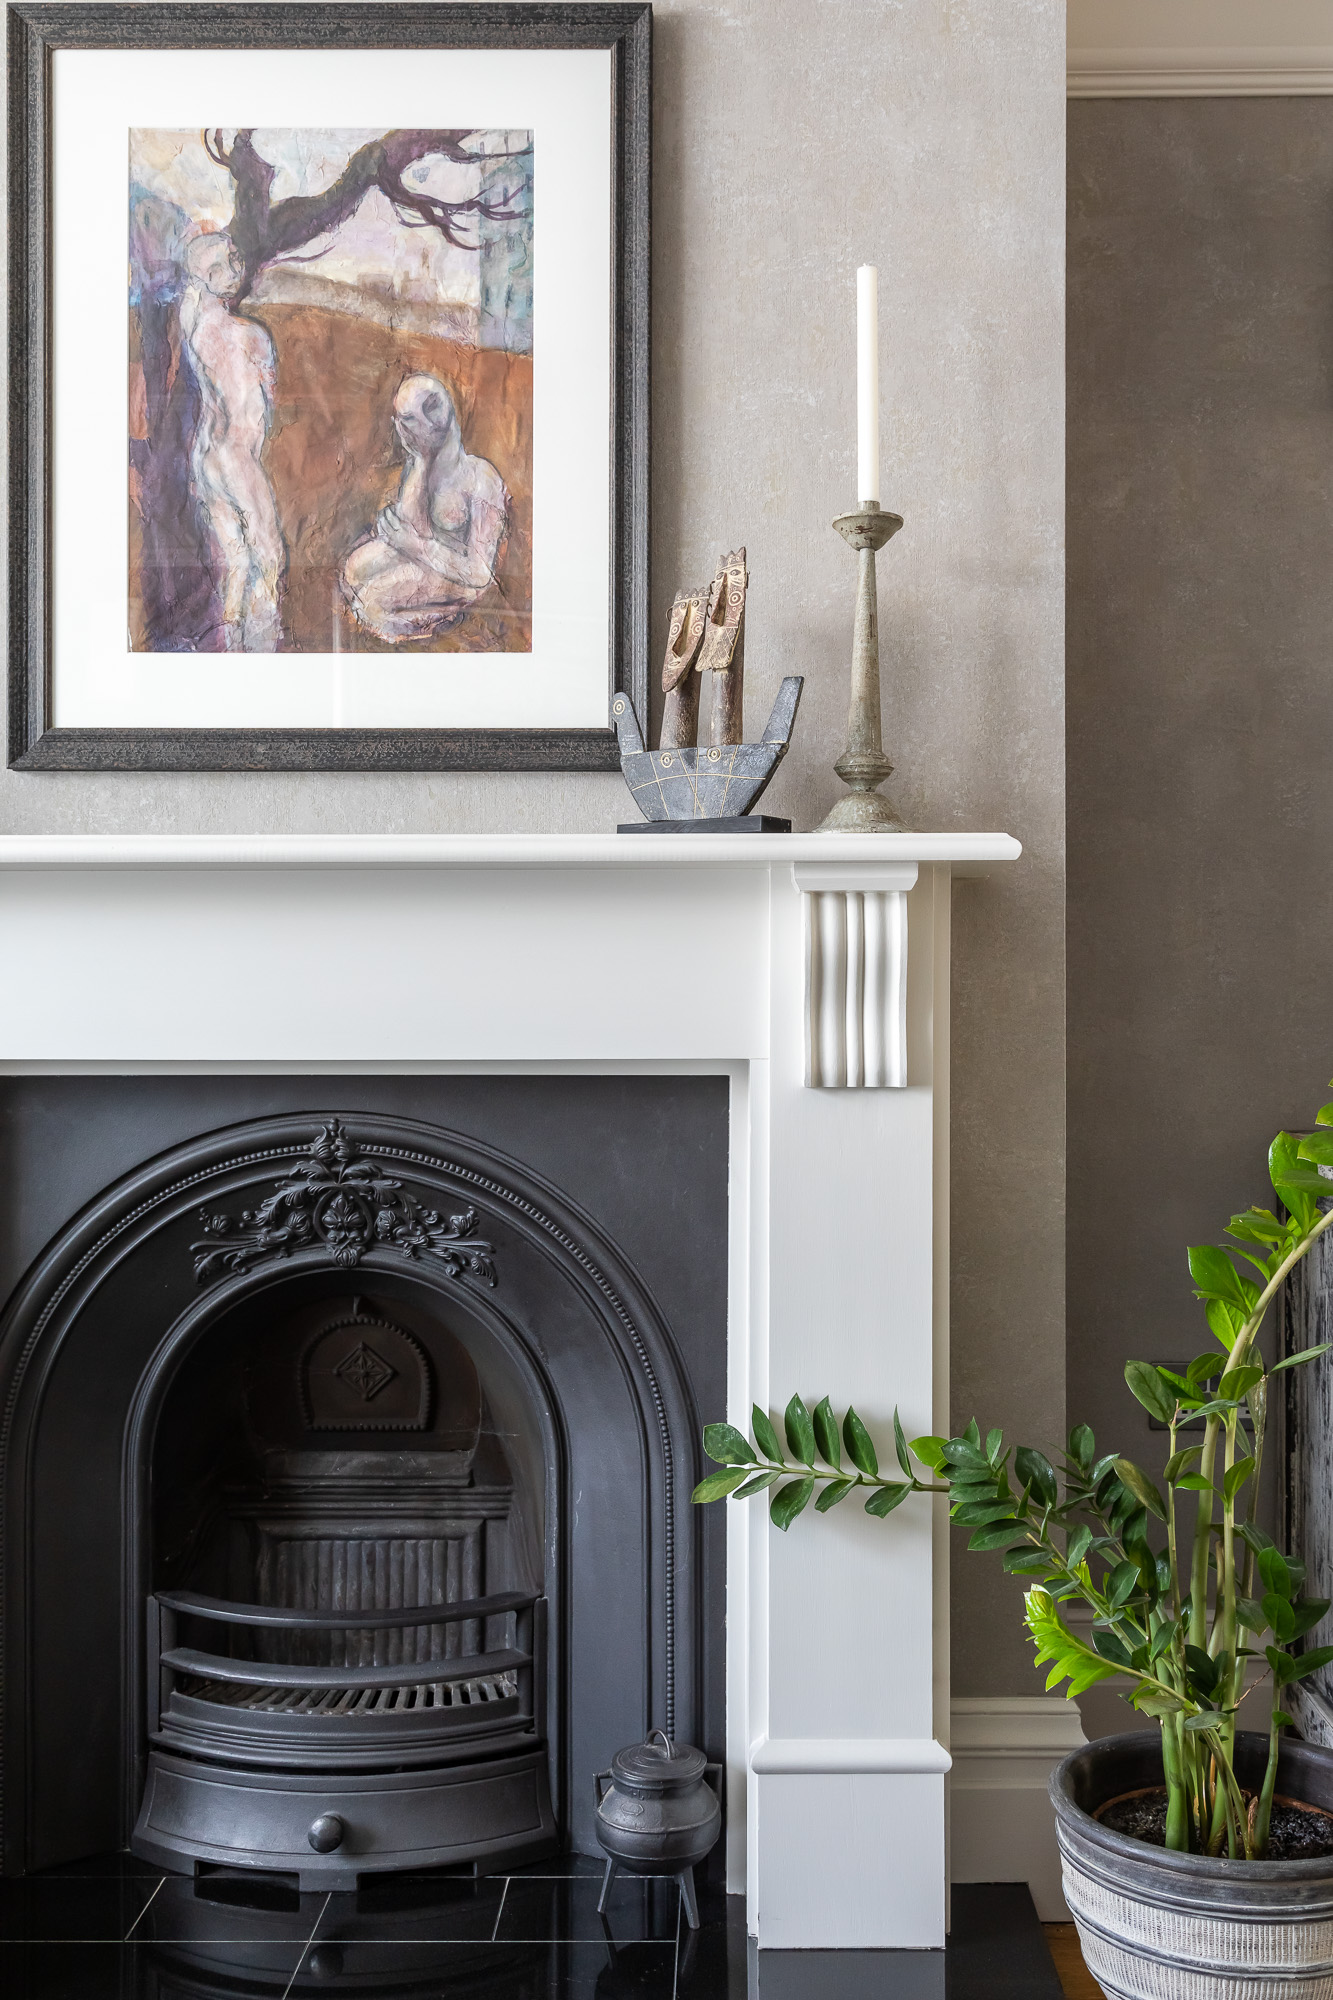 jonathan bond, interior photographer, fireplace & potted plant, mill road, cambridge